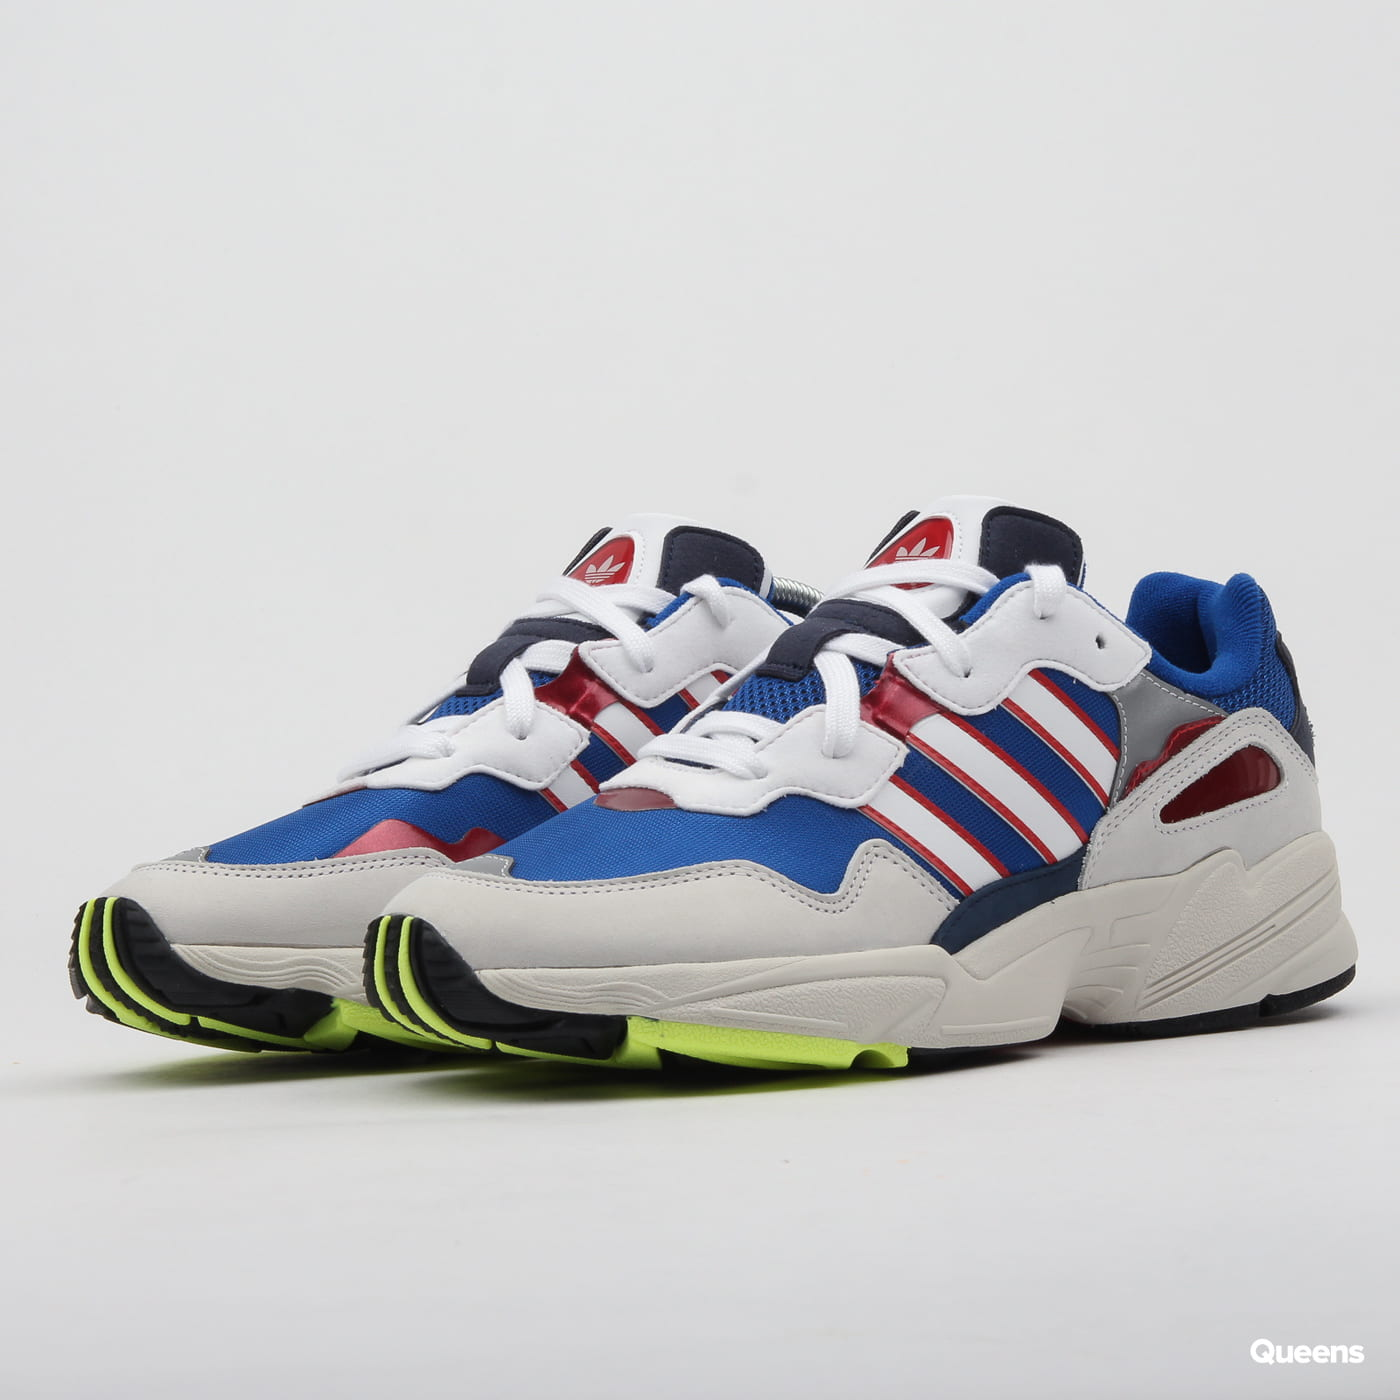 best service bb29f 0aeb2 Zoom in Zoom in Zoom in Zoom in Zoom in. adidas Originals Yung - 96 ...